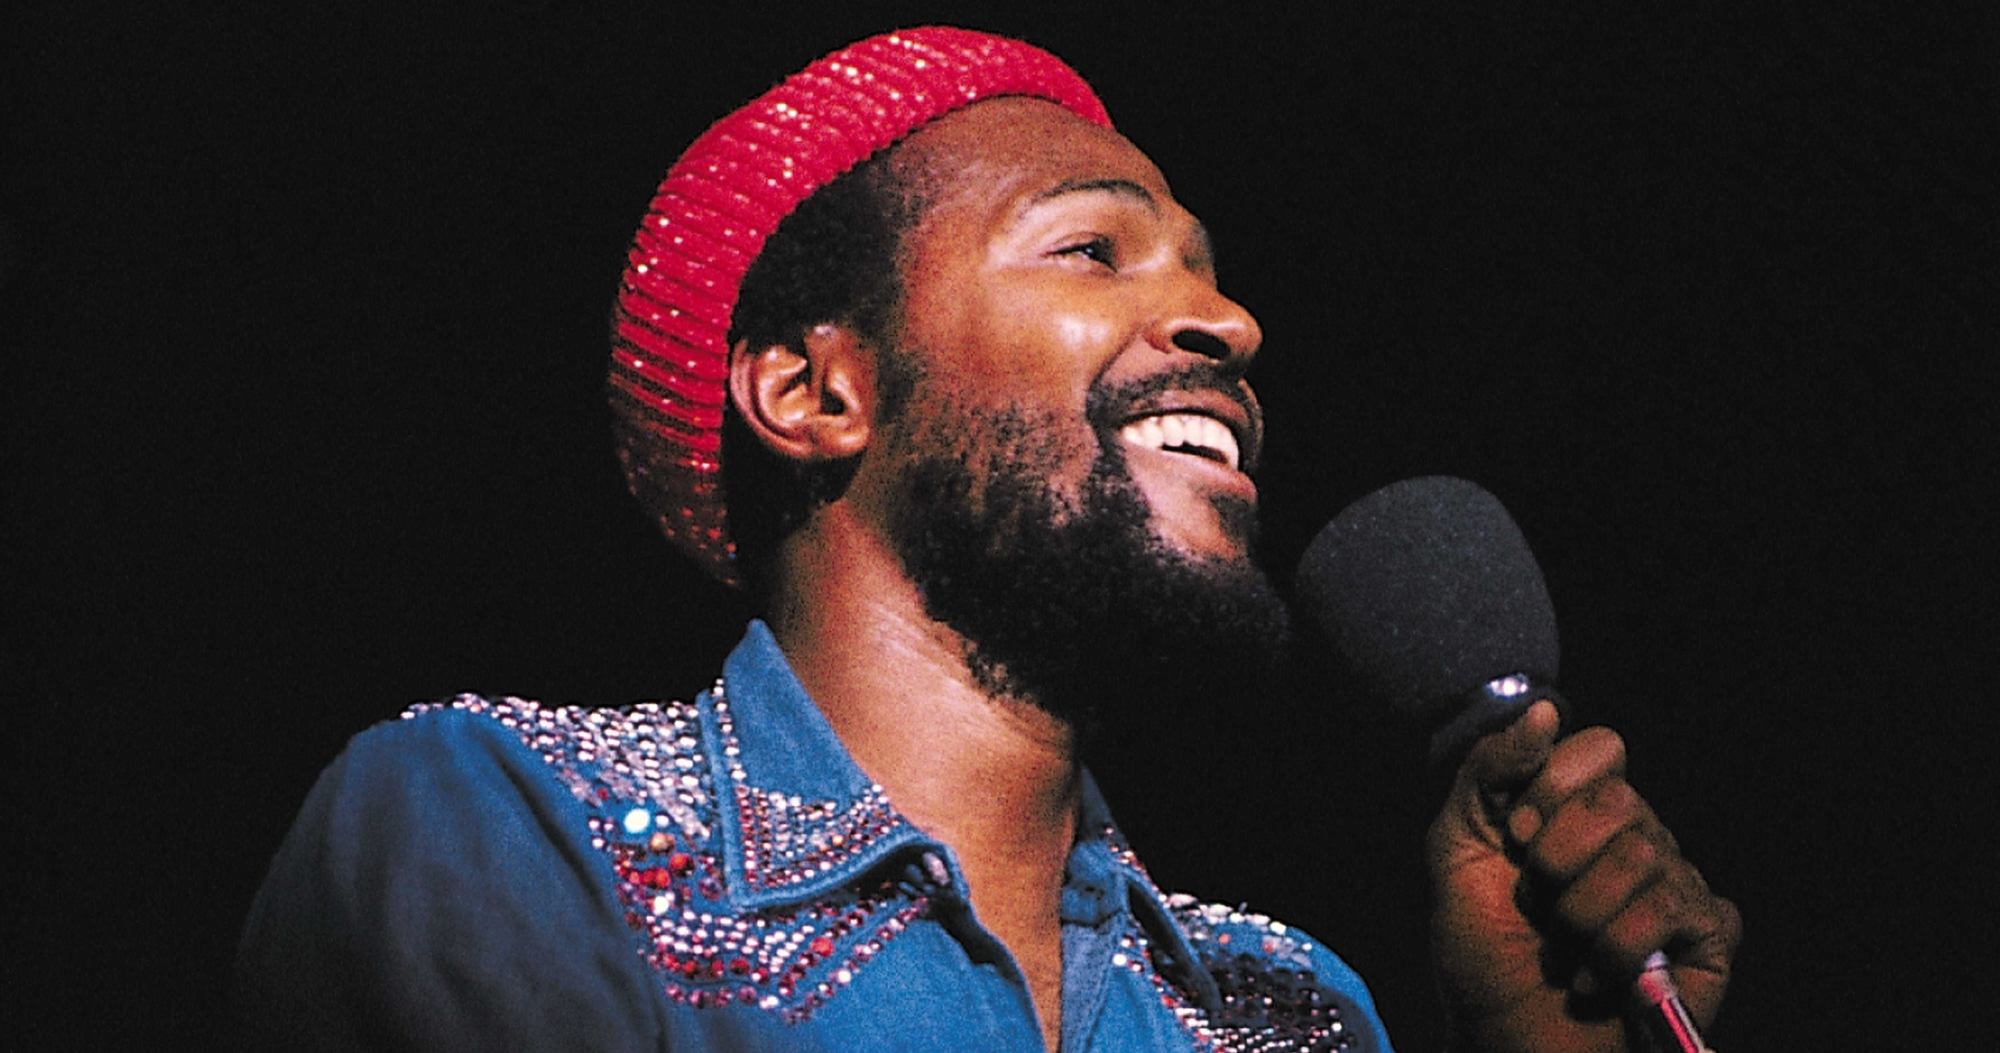 Marvin-Gaye-Album-Cover-Crop